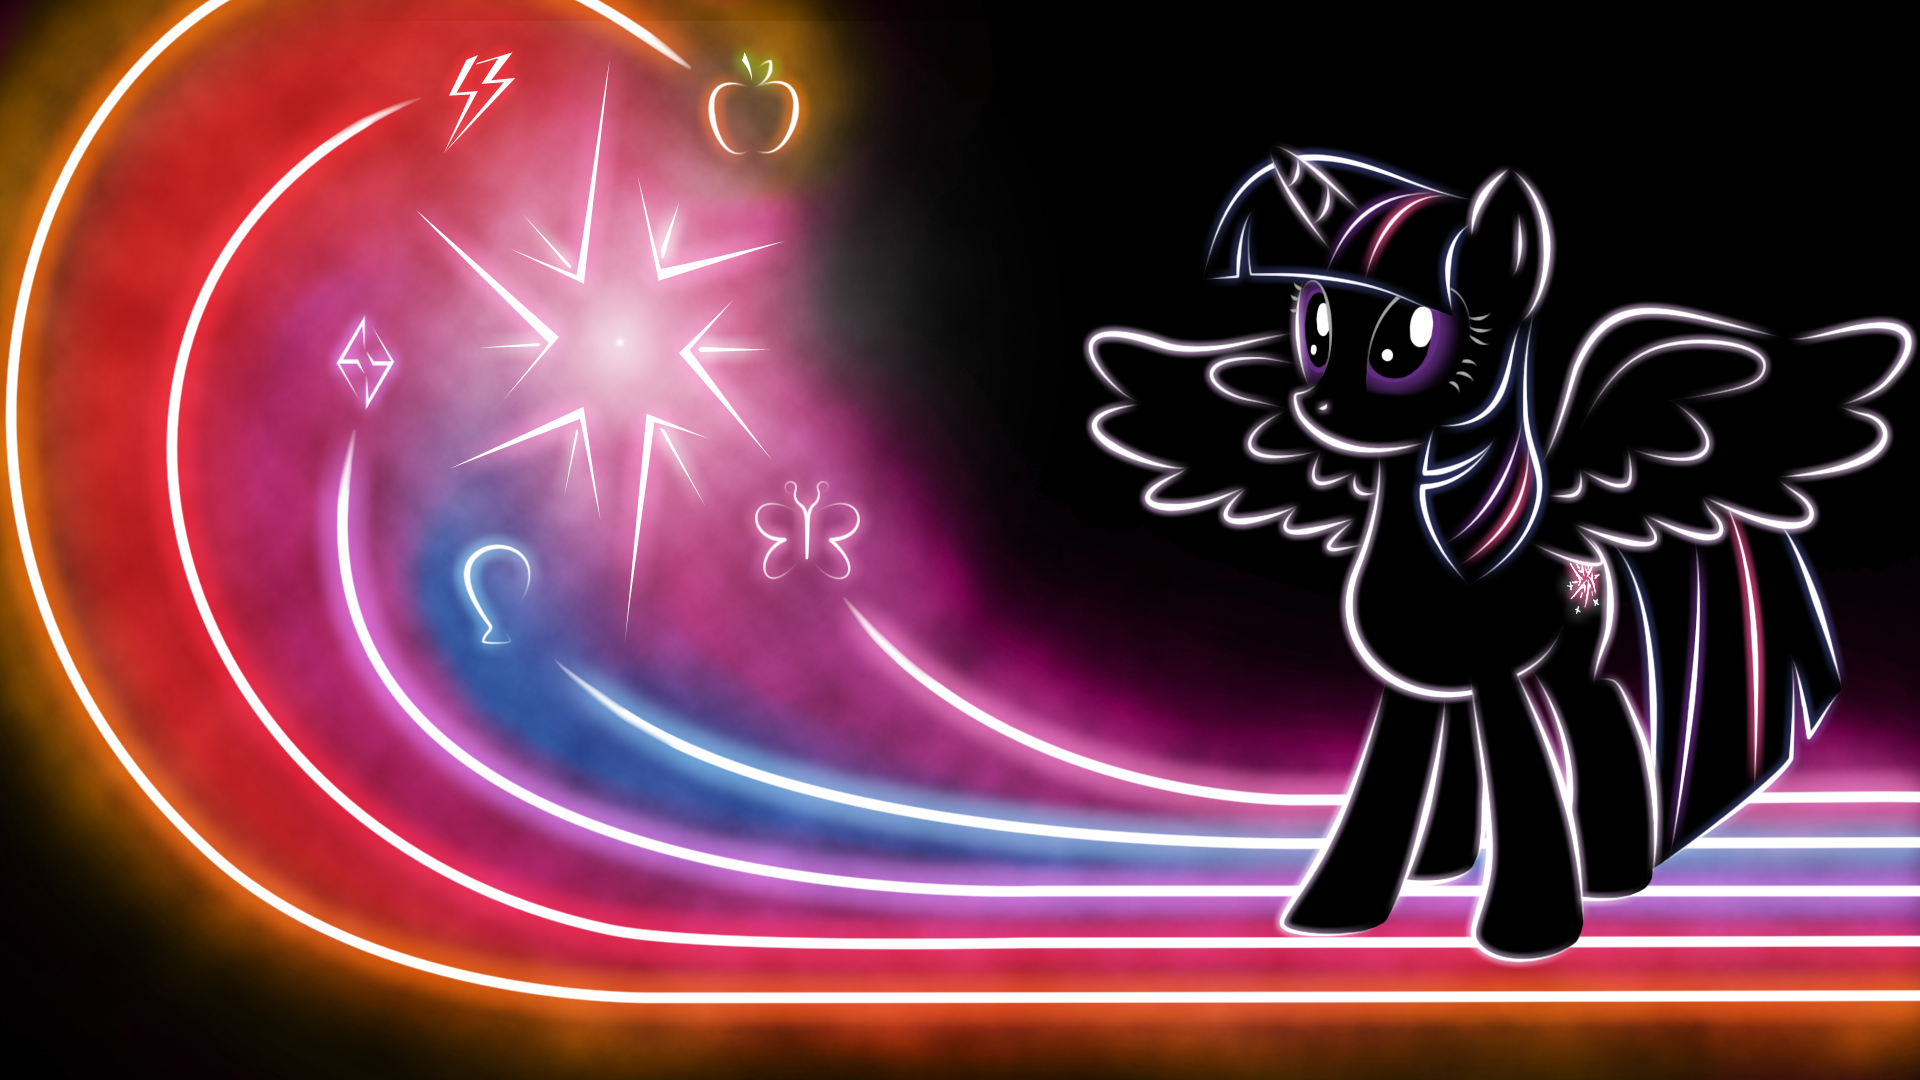 Doctor Whooves Glow Wallpaper by Face of Moe on DeviantArt